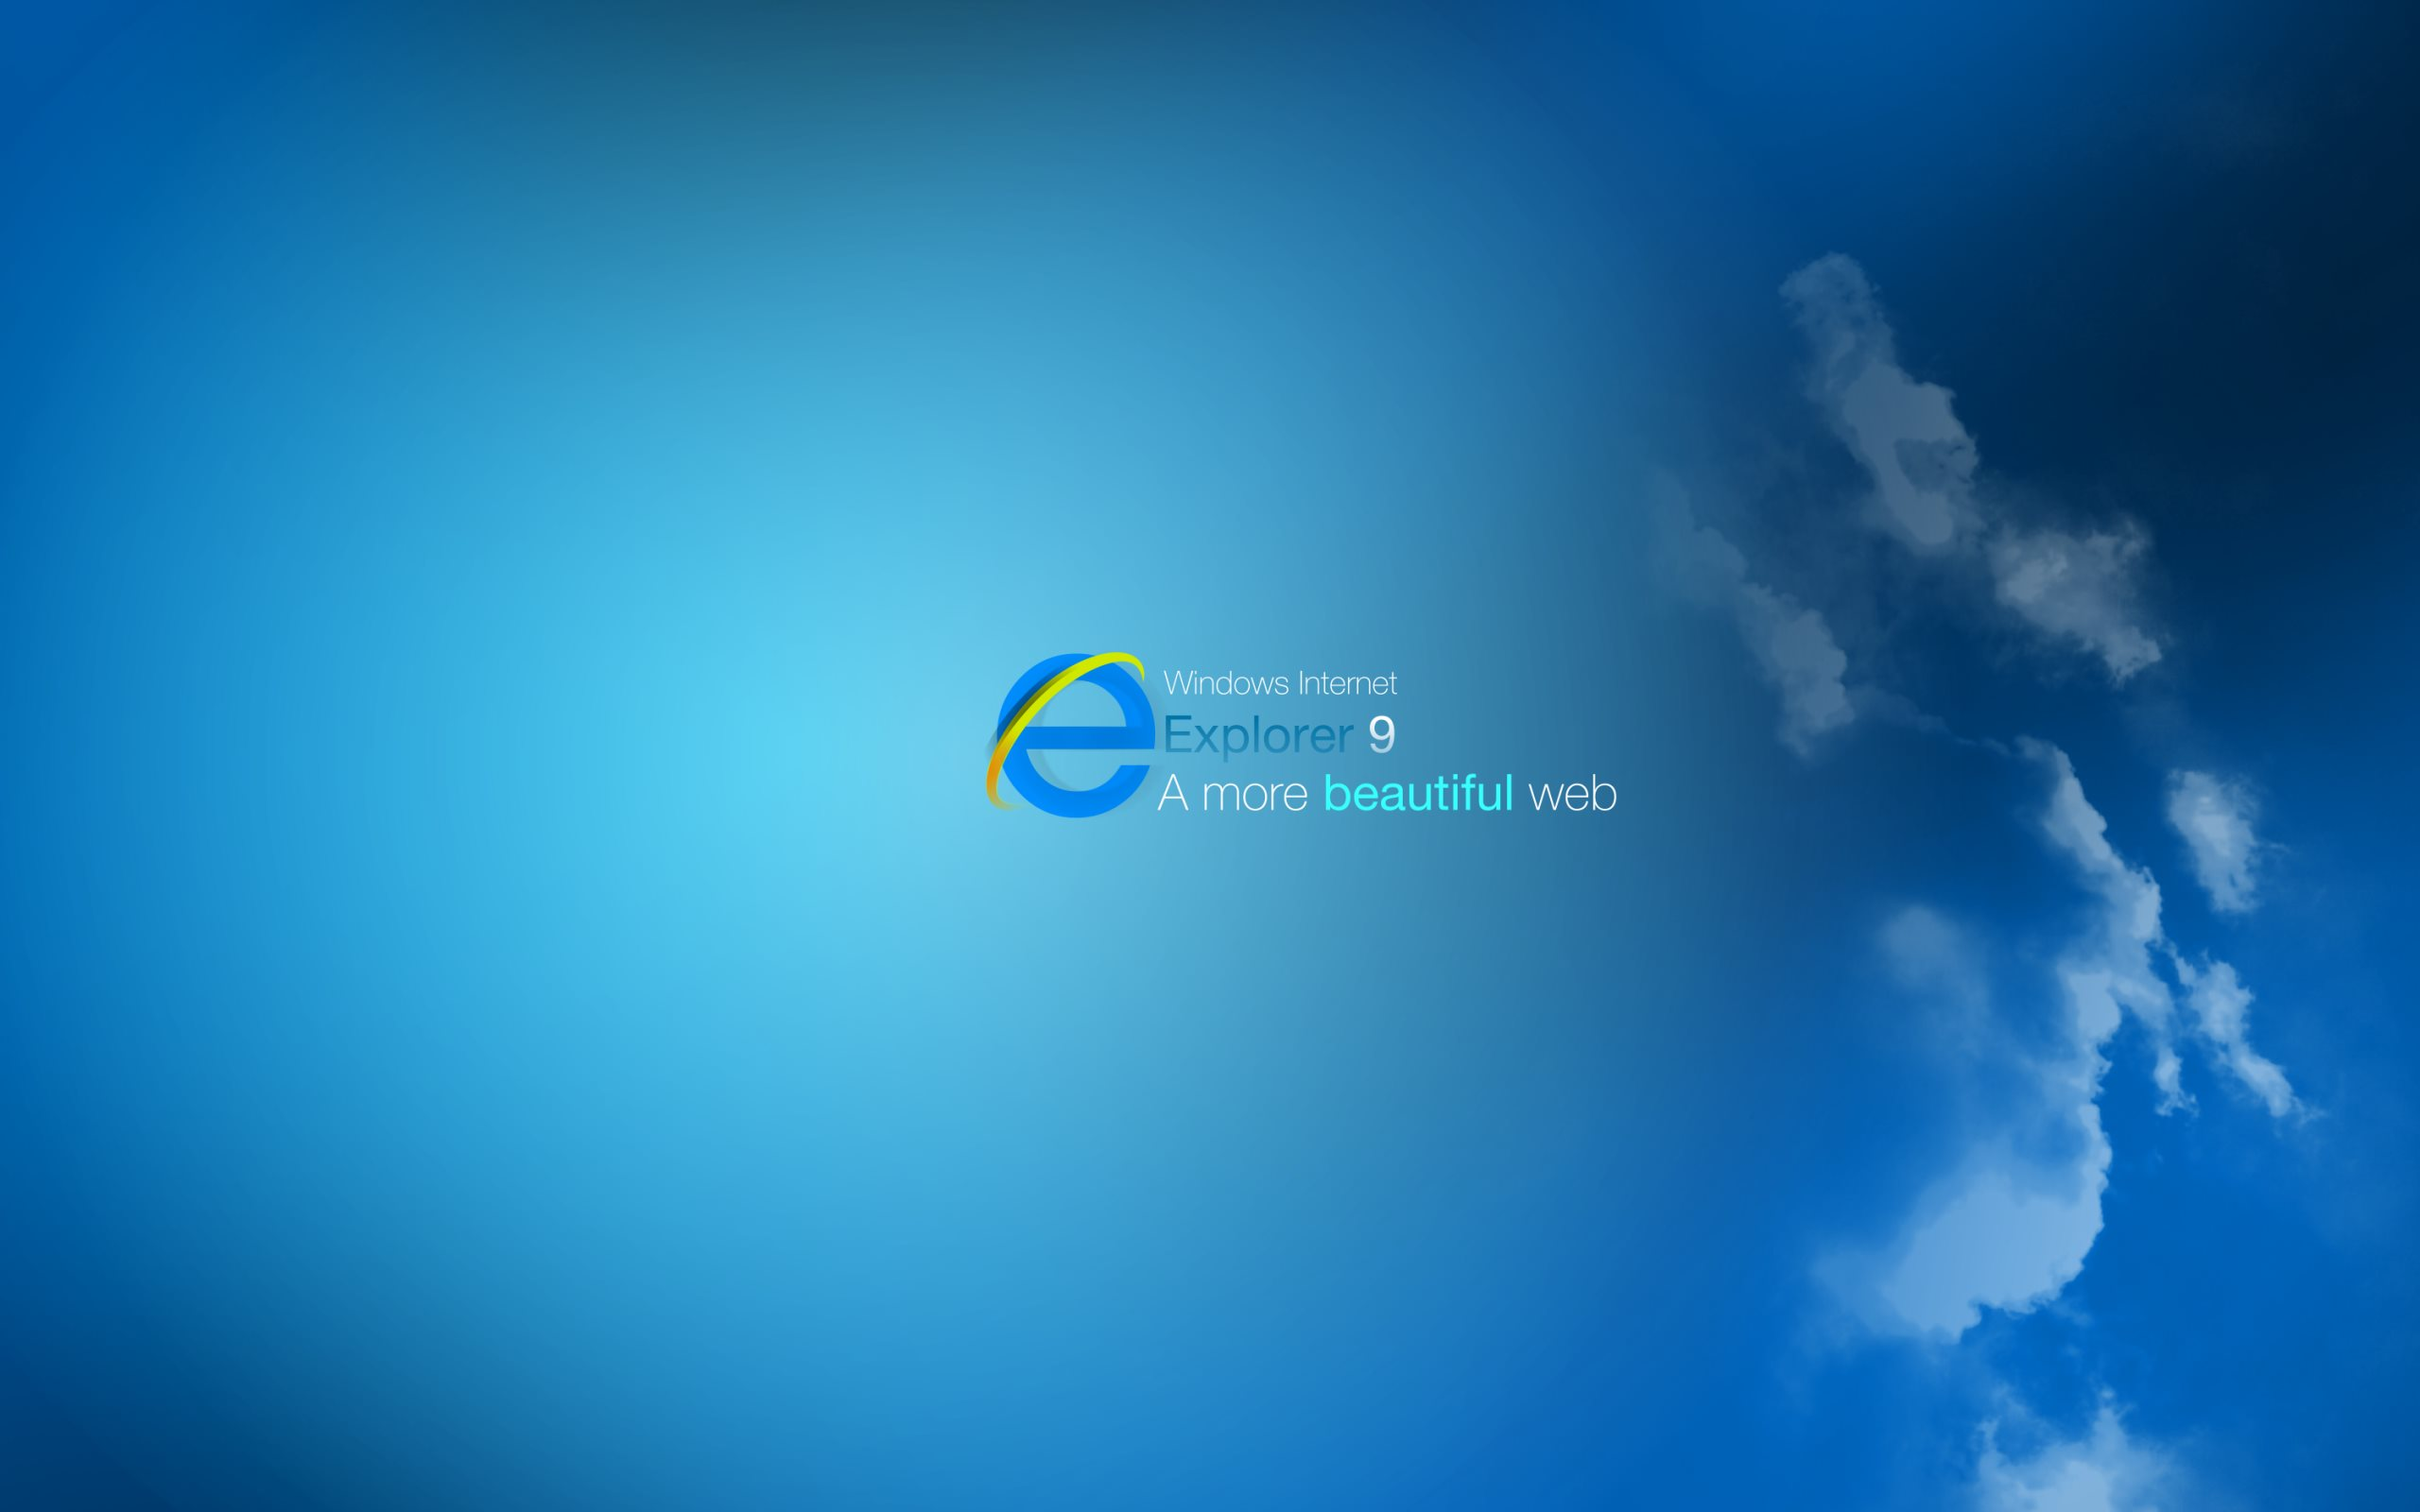 HD Wallpaper: Internet Explorer 9